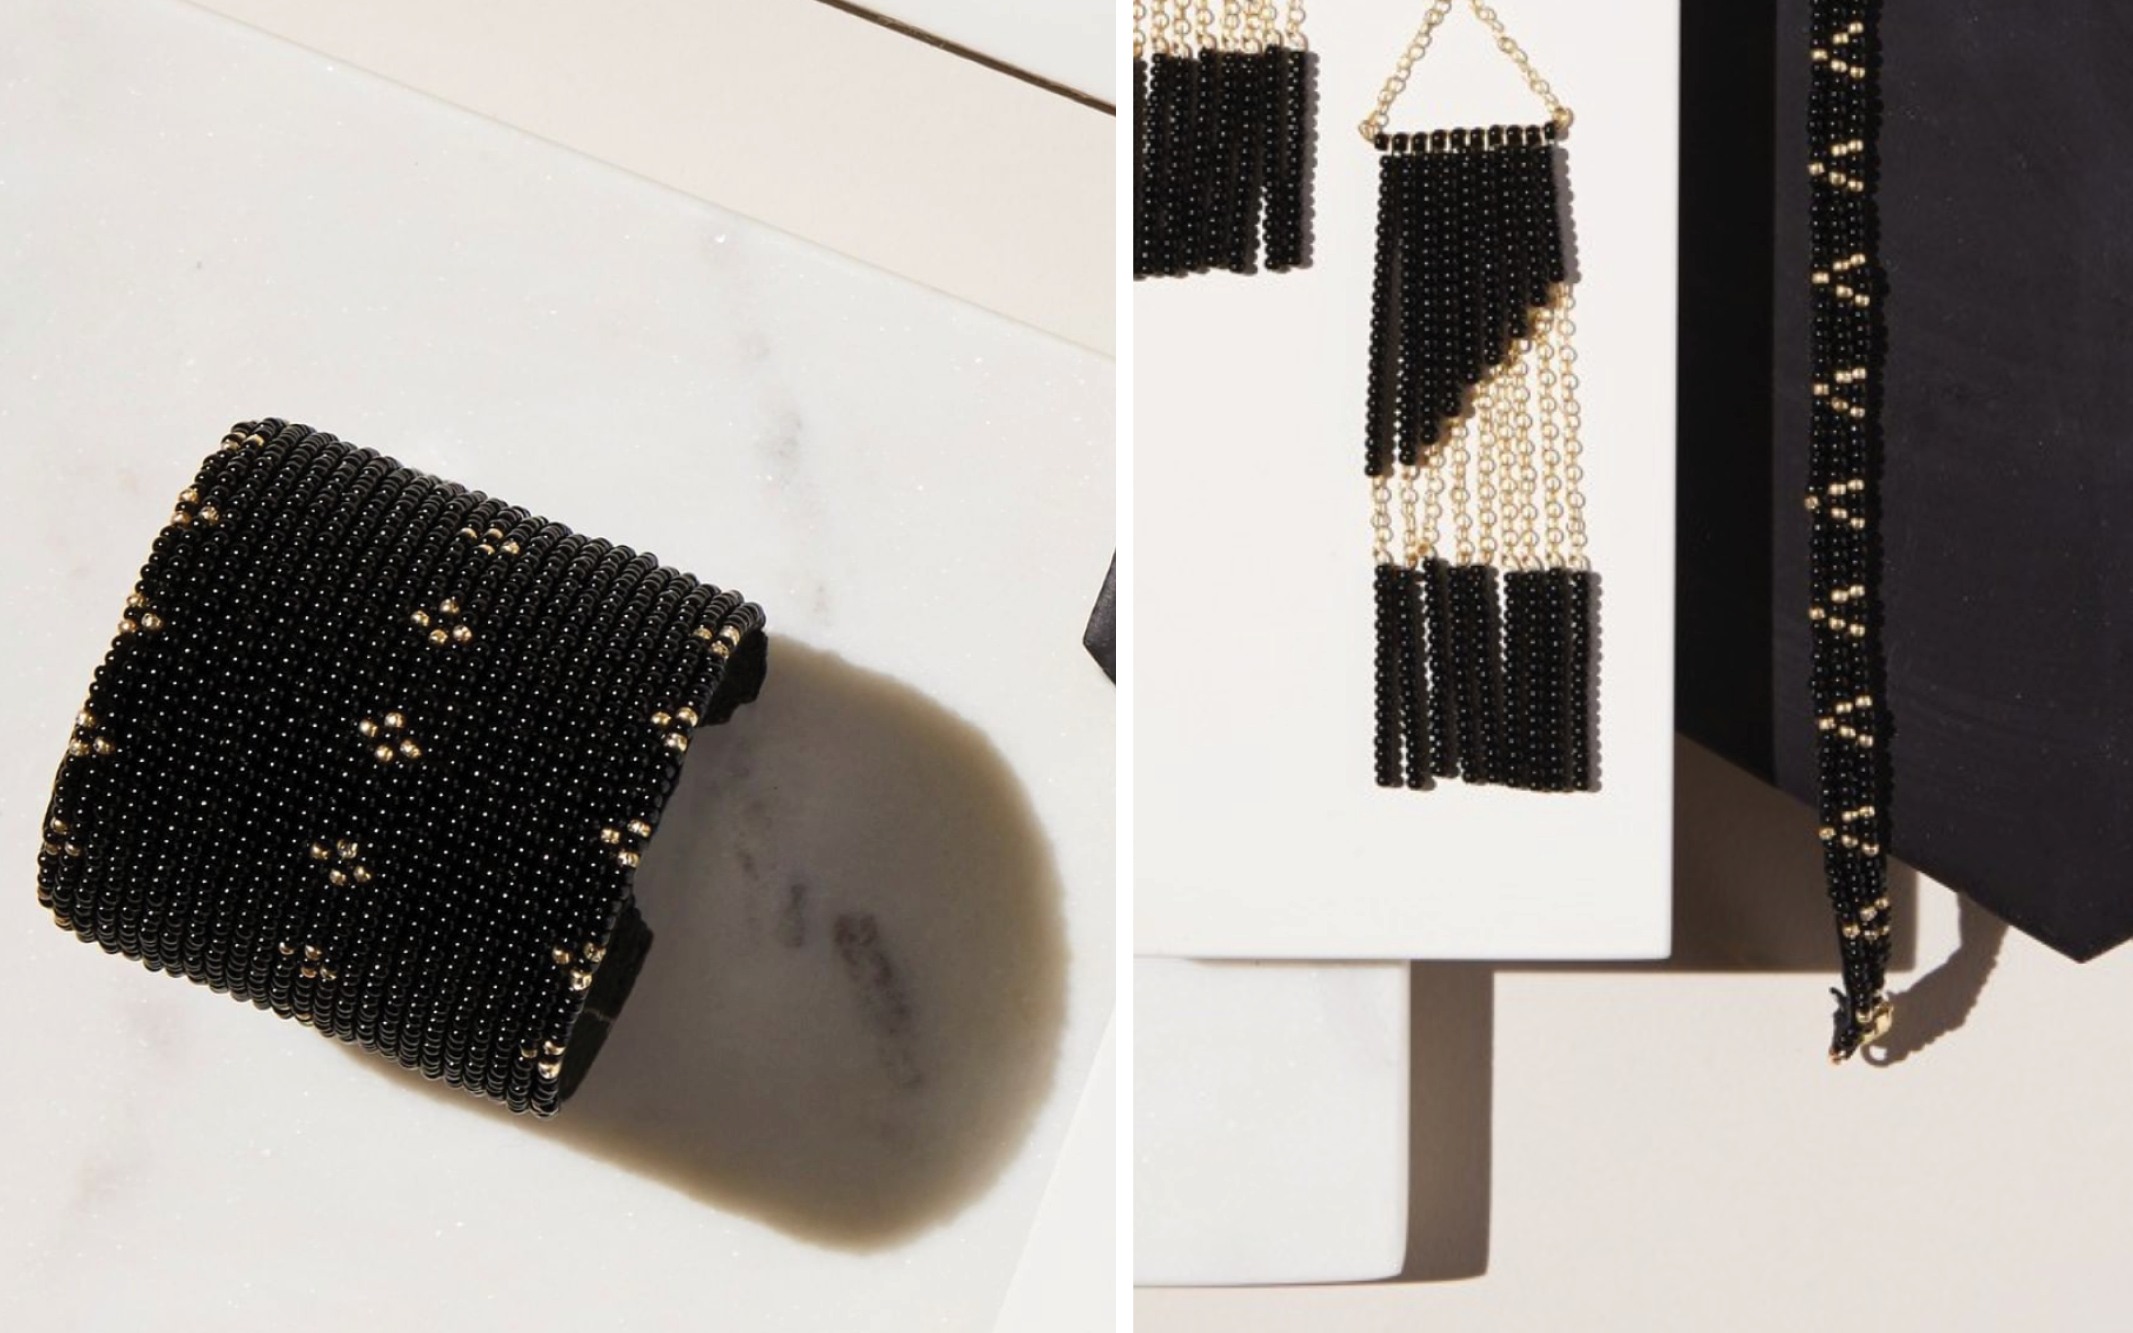 Pieces from Sidai's Sipolio collection